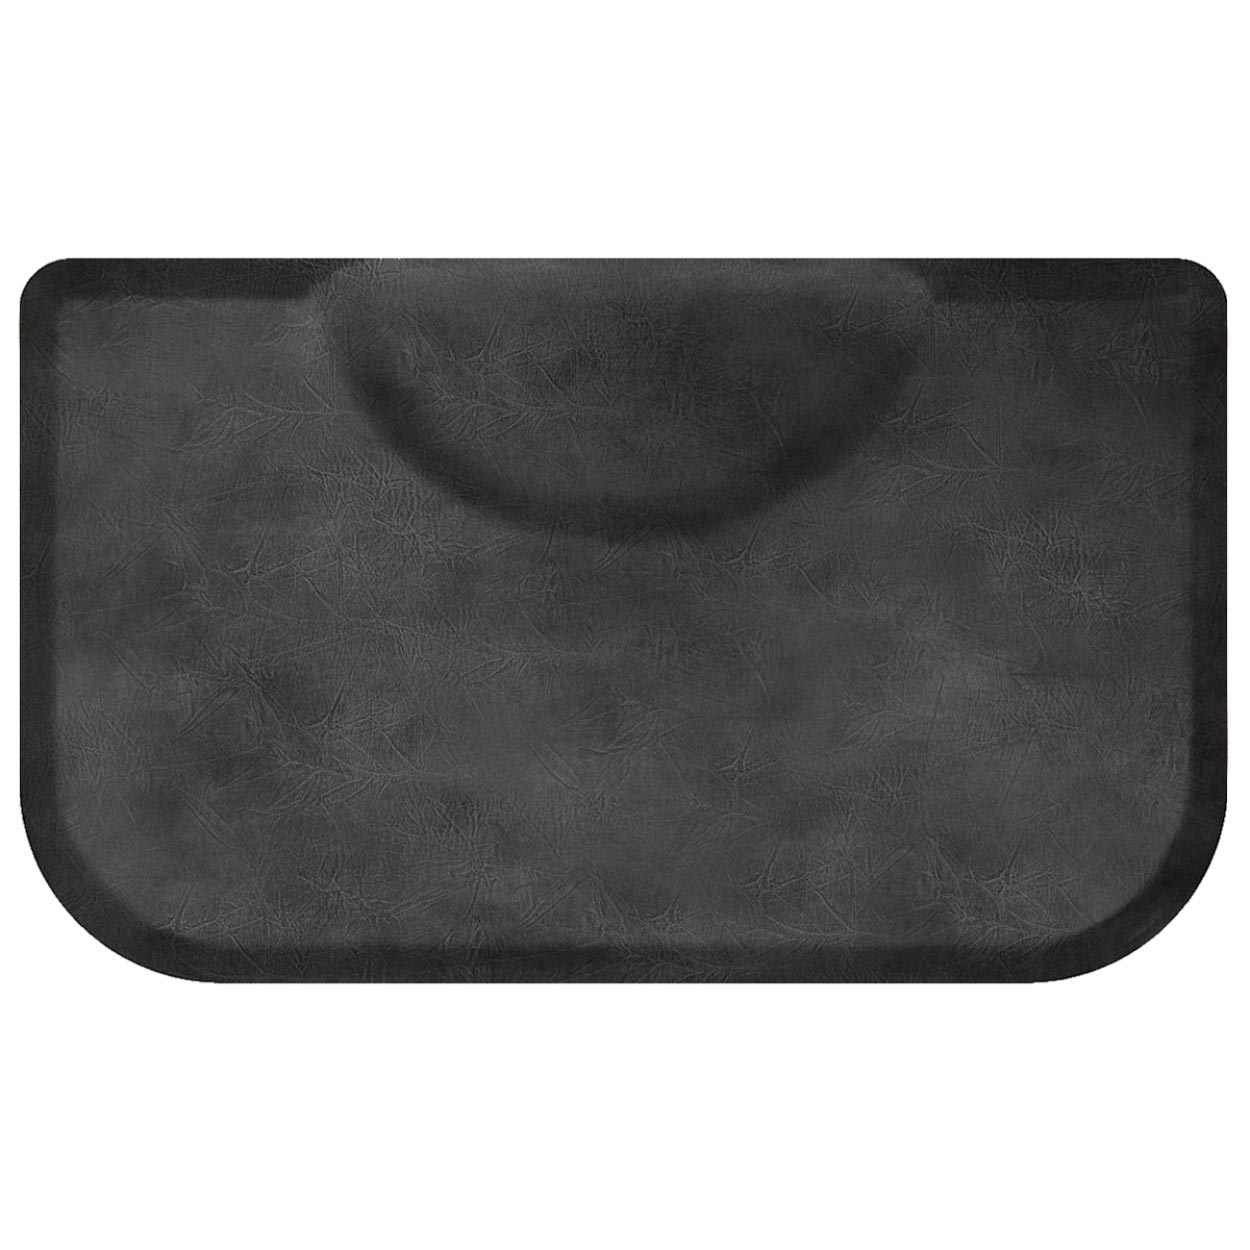 3x5 Barber Anti-Fatigue Salon Mat image size reference